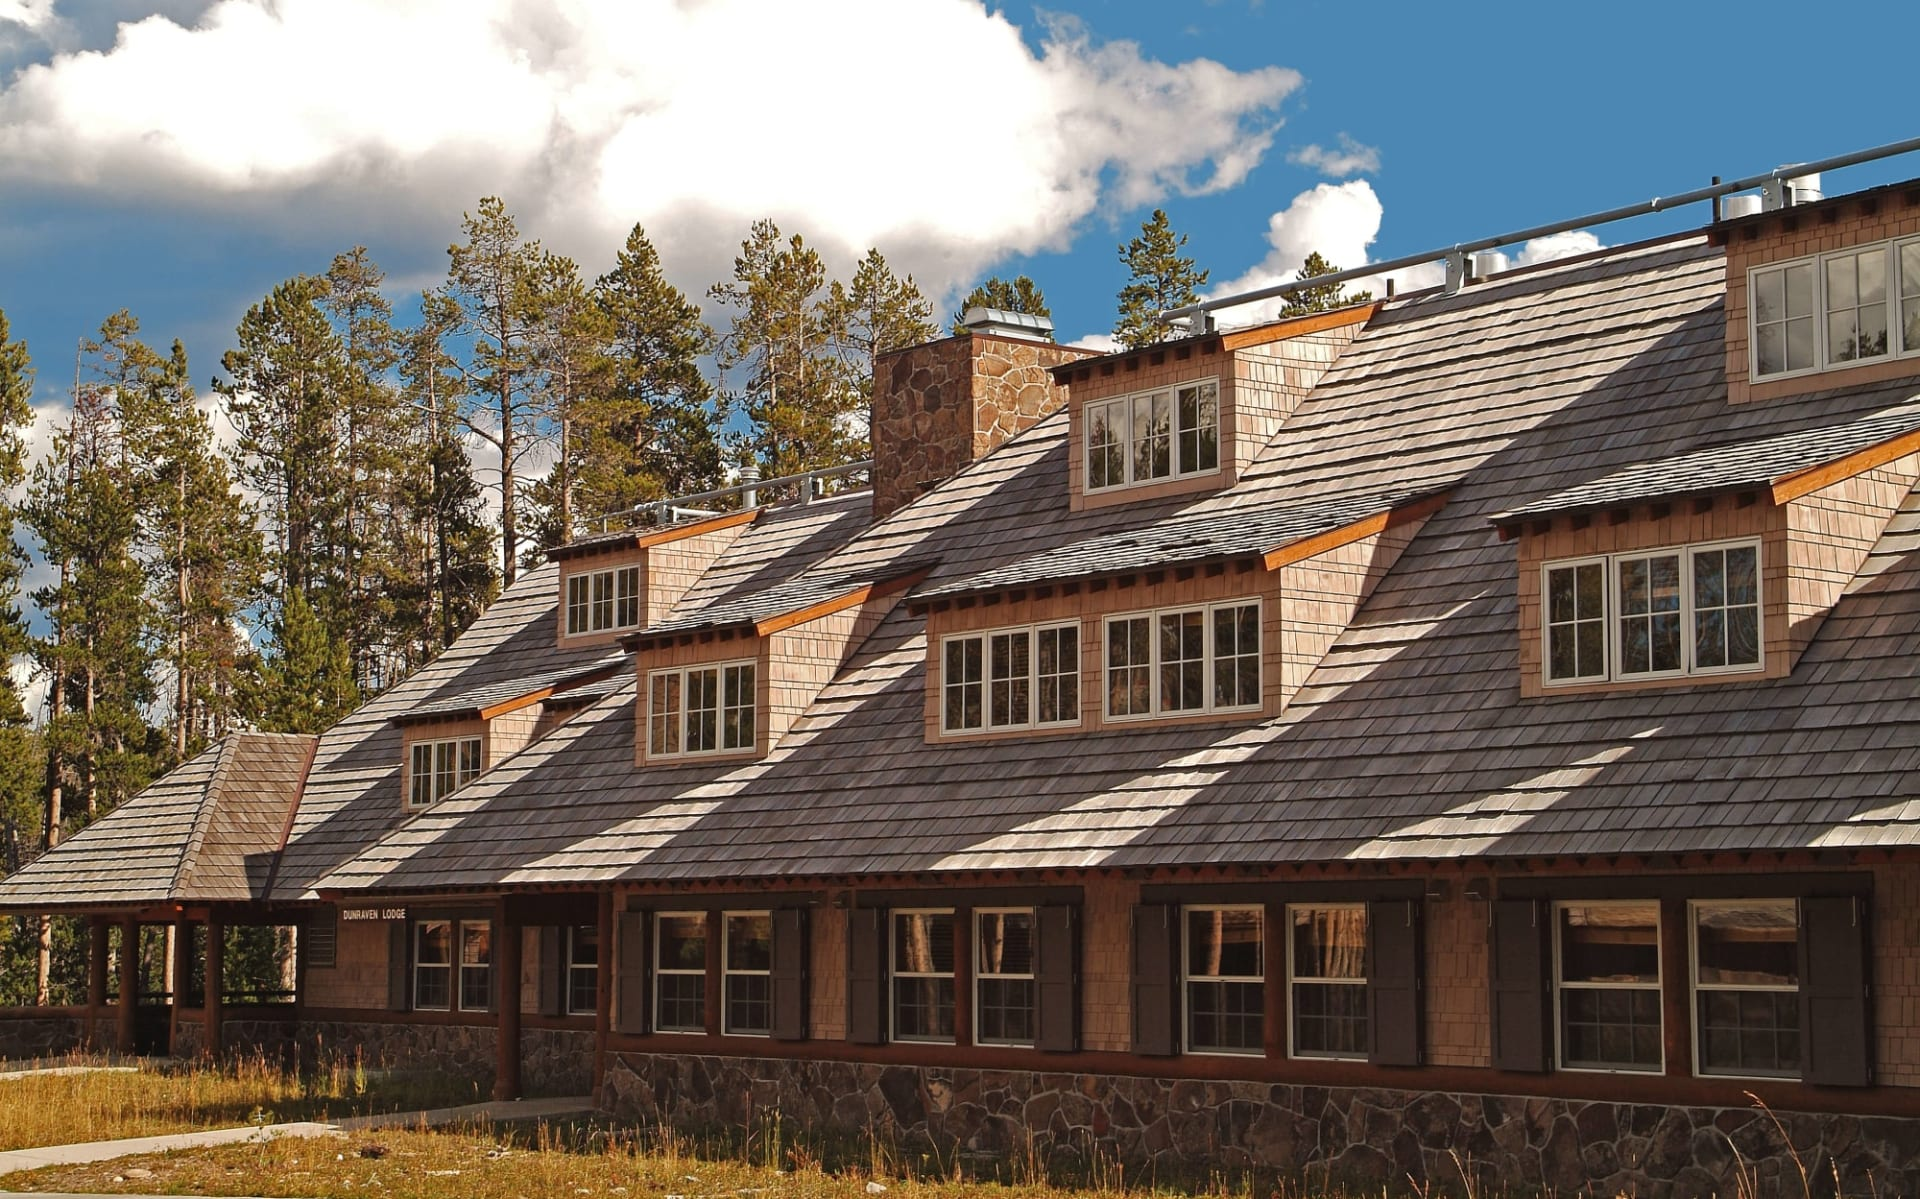 Canyon Lodge and Cabins in Yellowstone National Park:  Canyon Lodge_Aussenansicht 1_RMHT